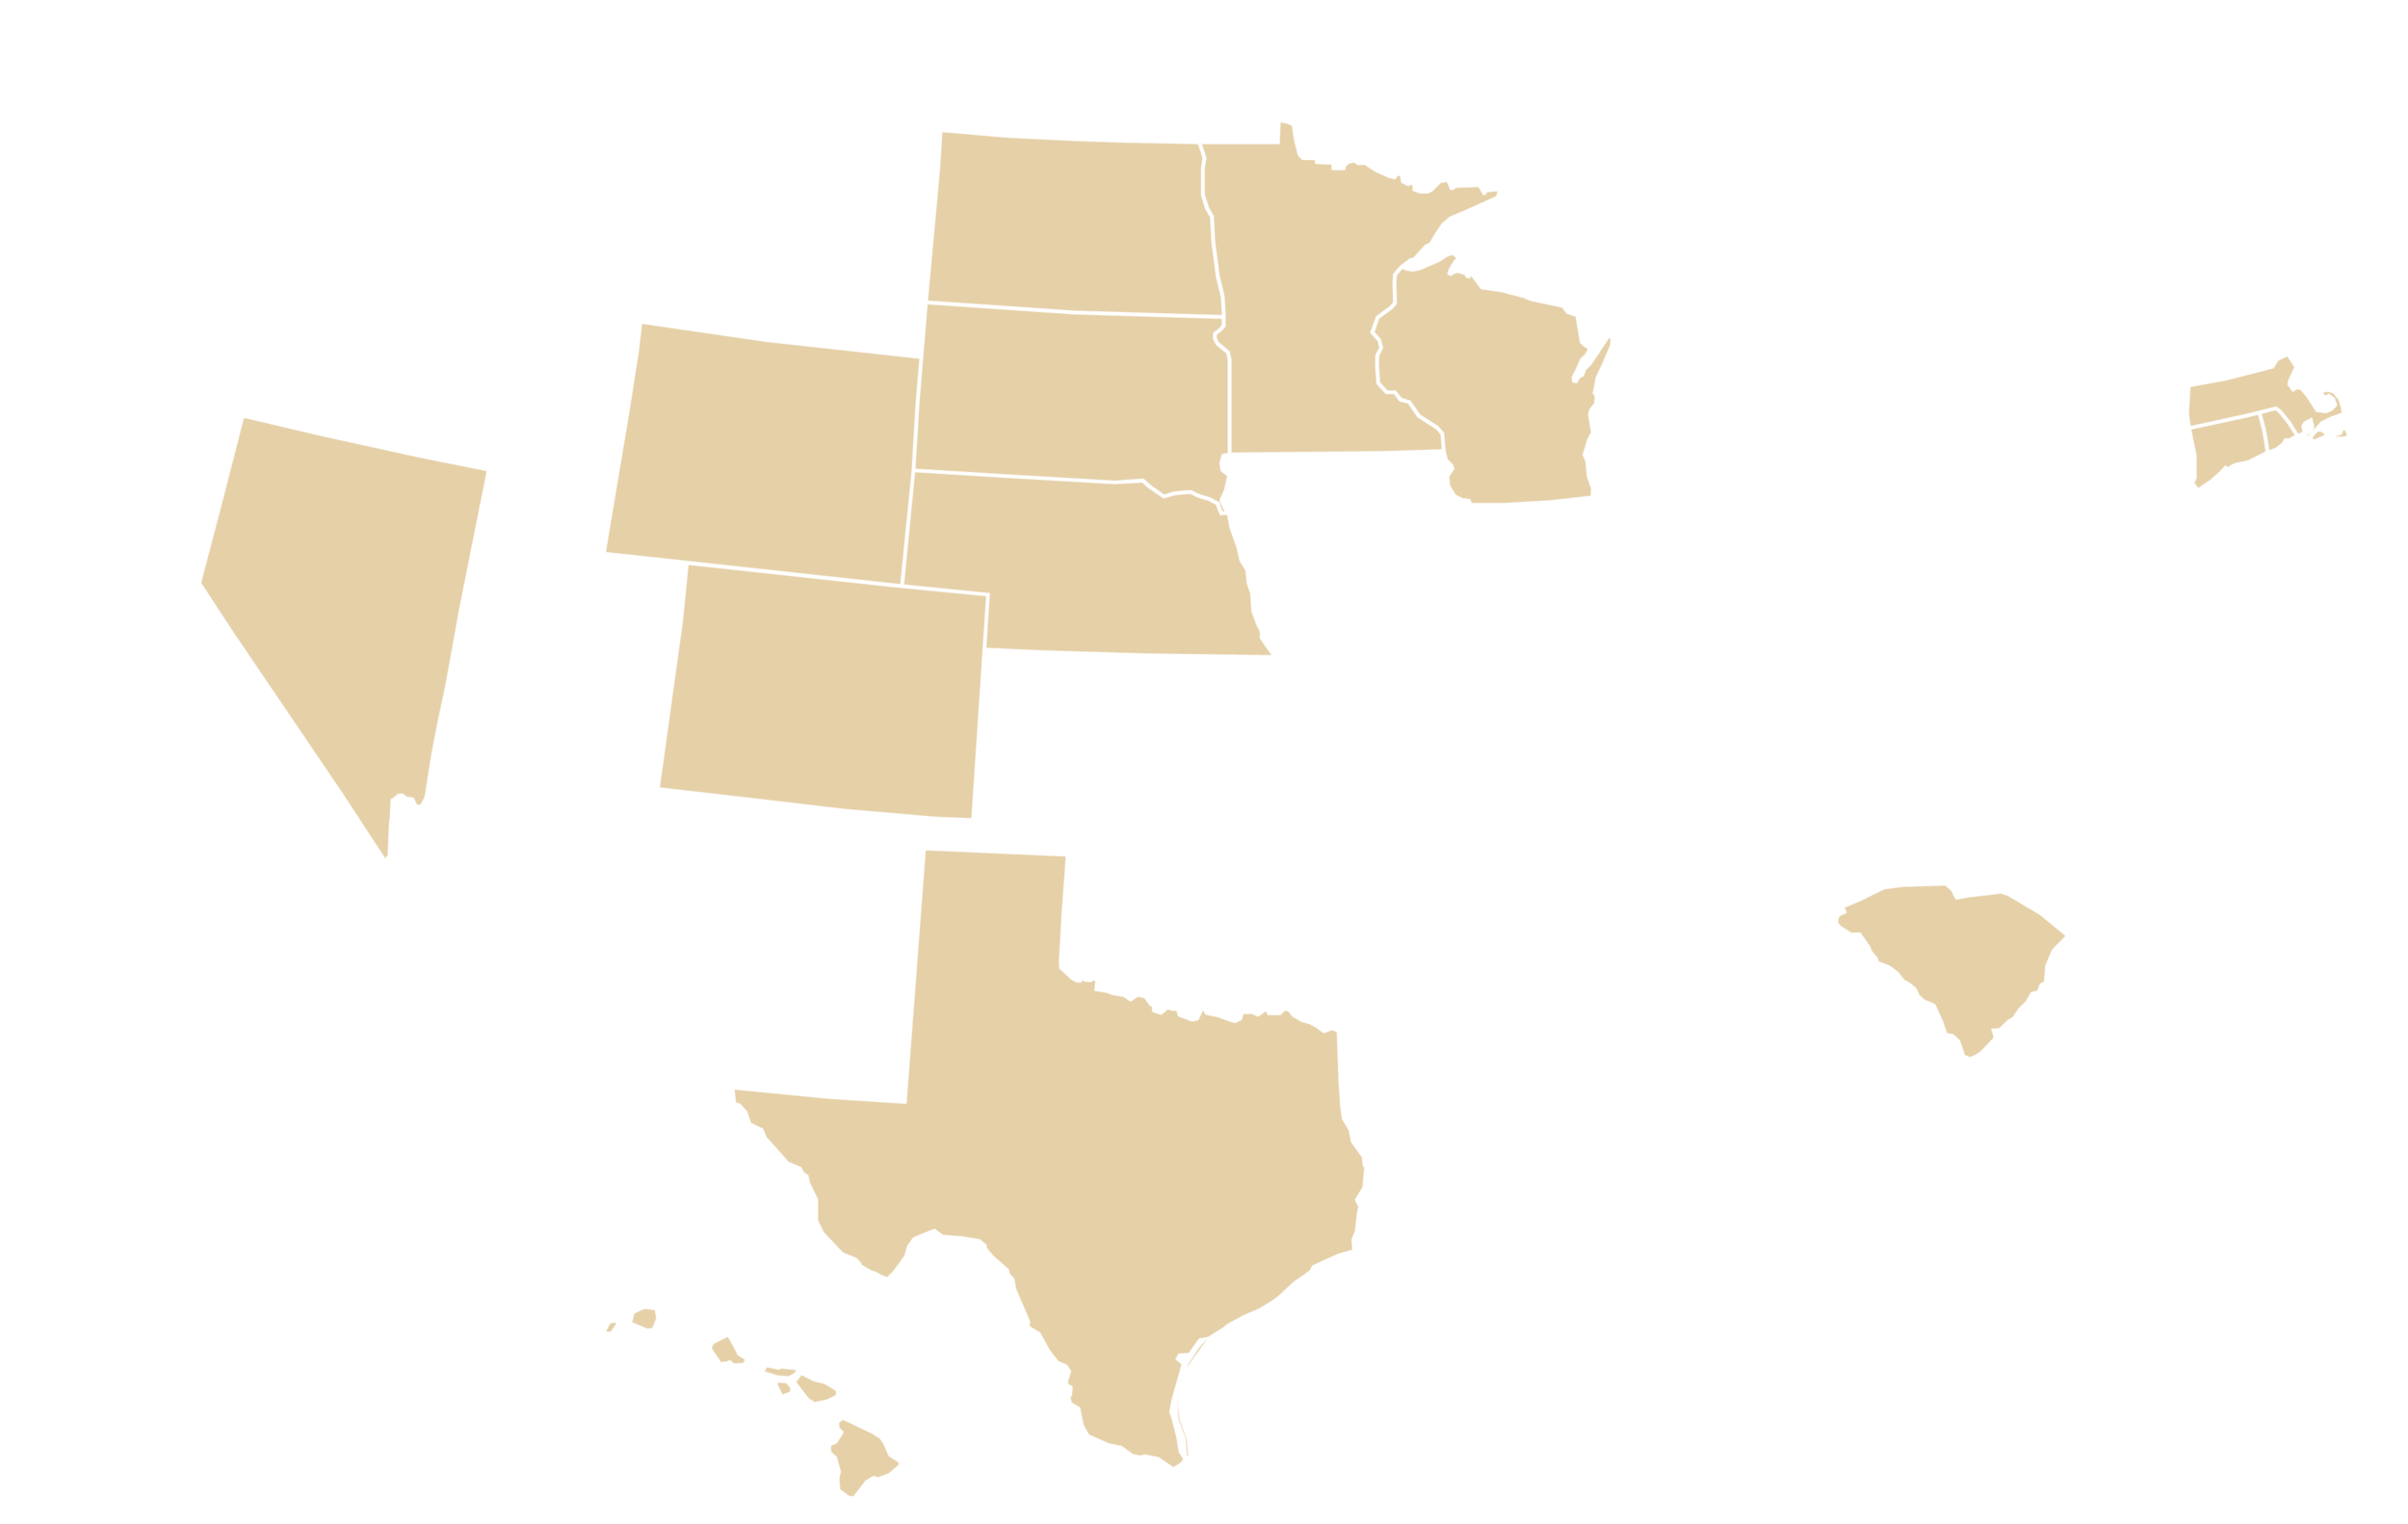 pm_map_usa_v7.png